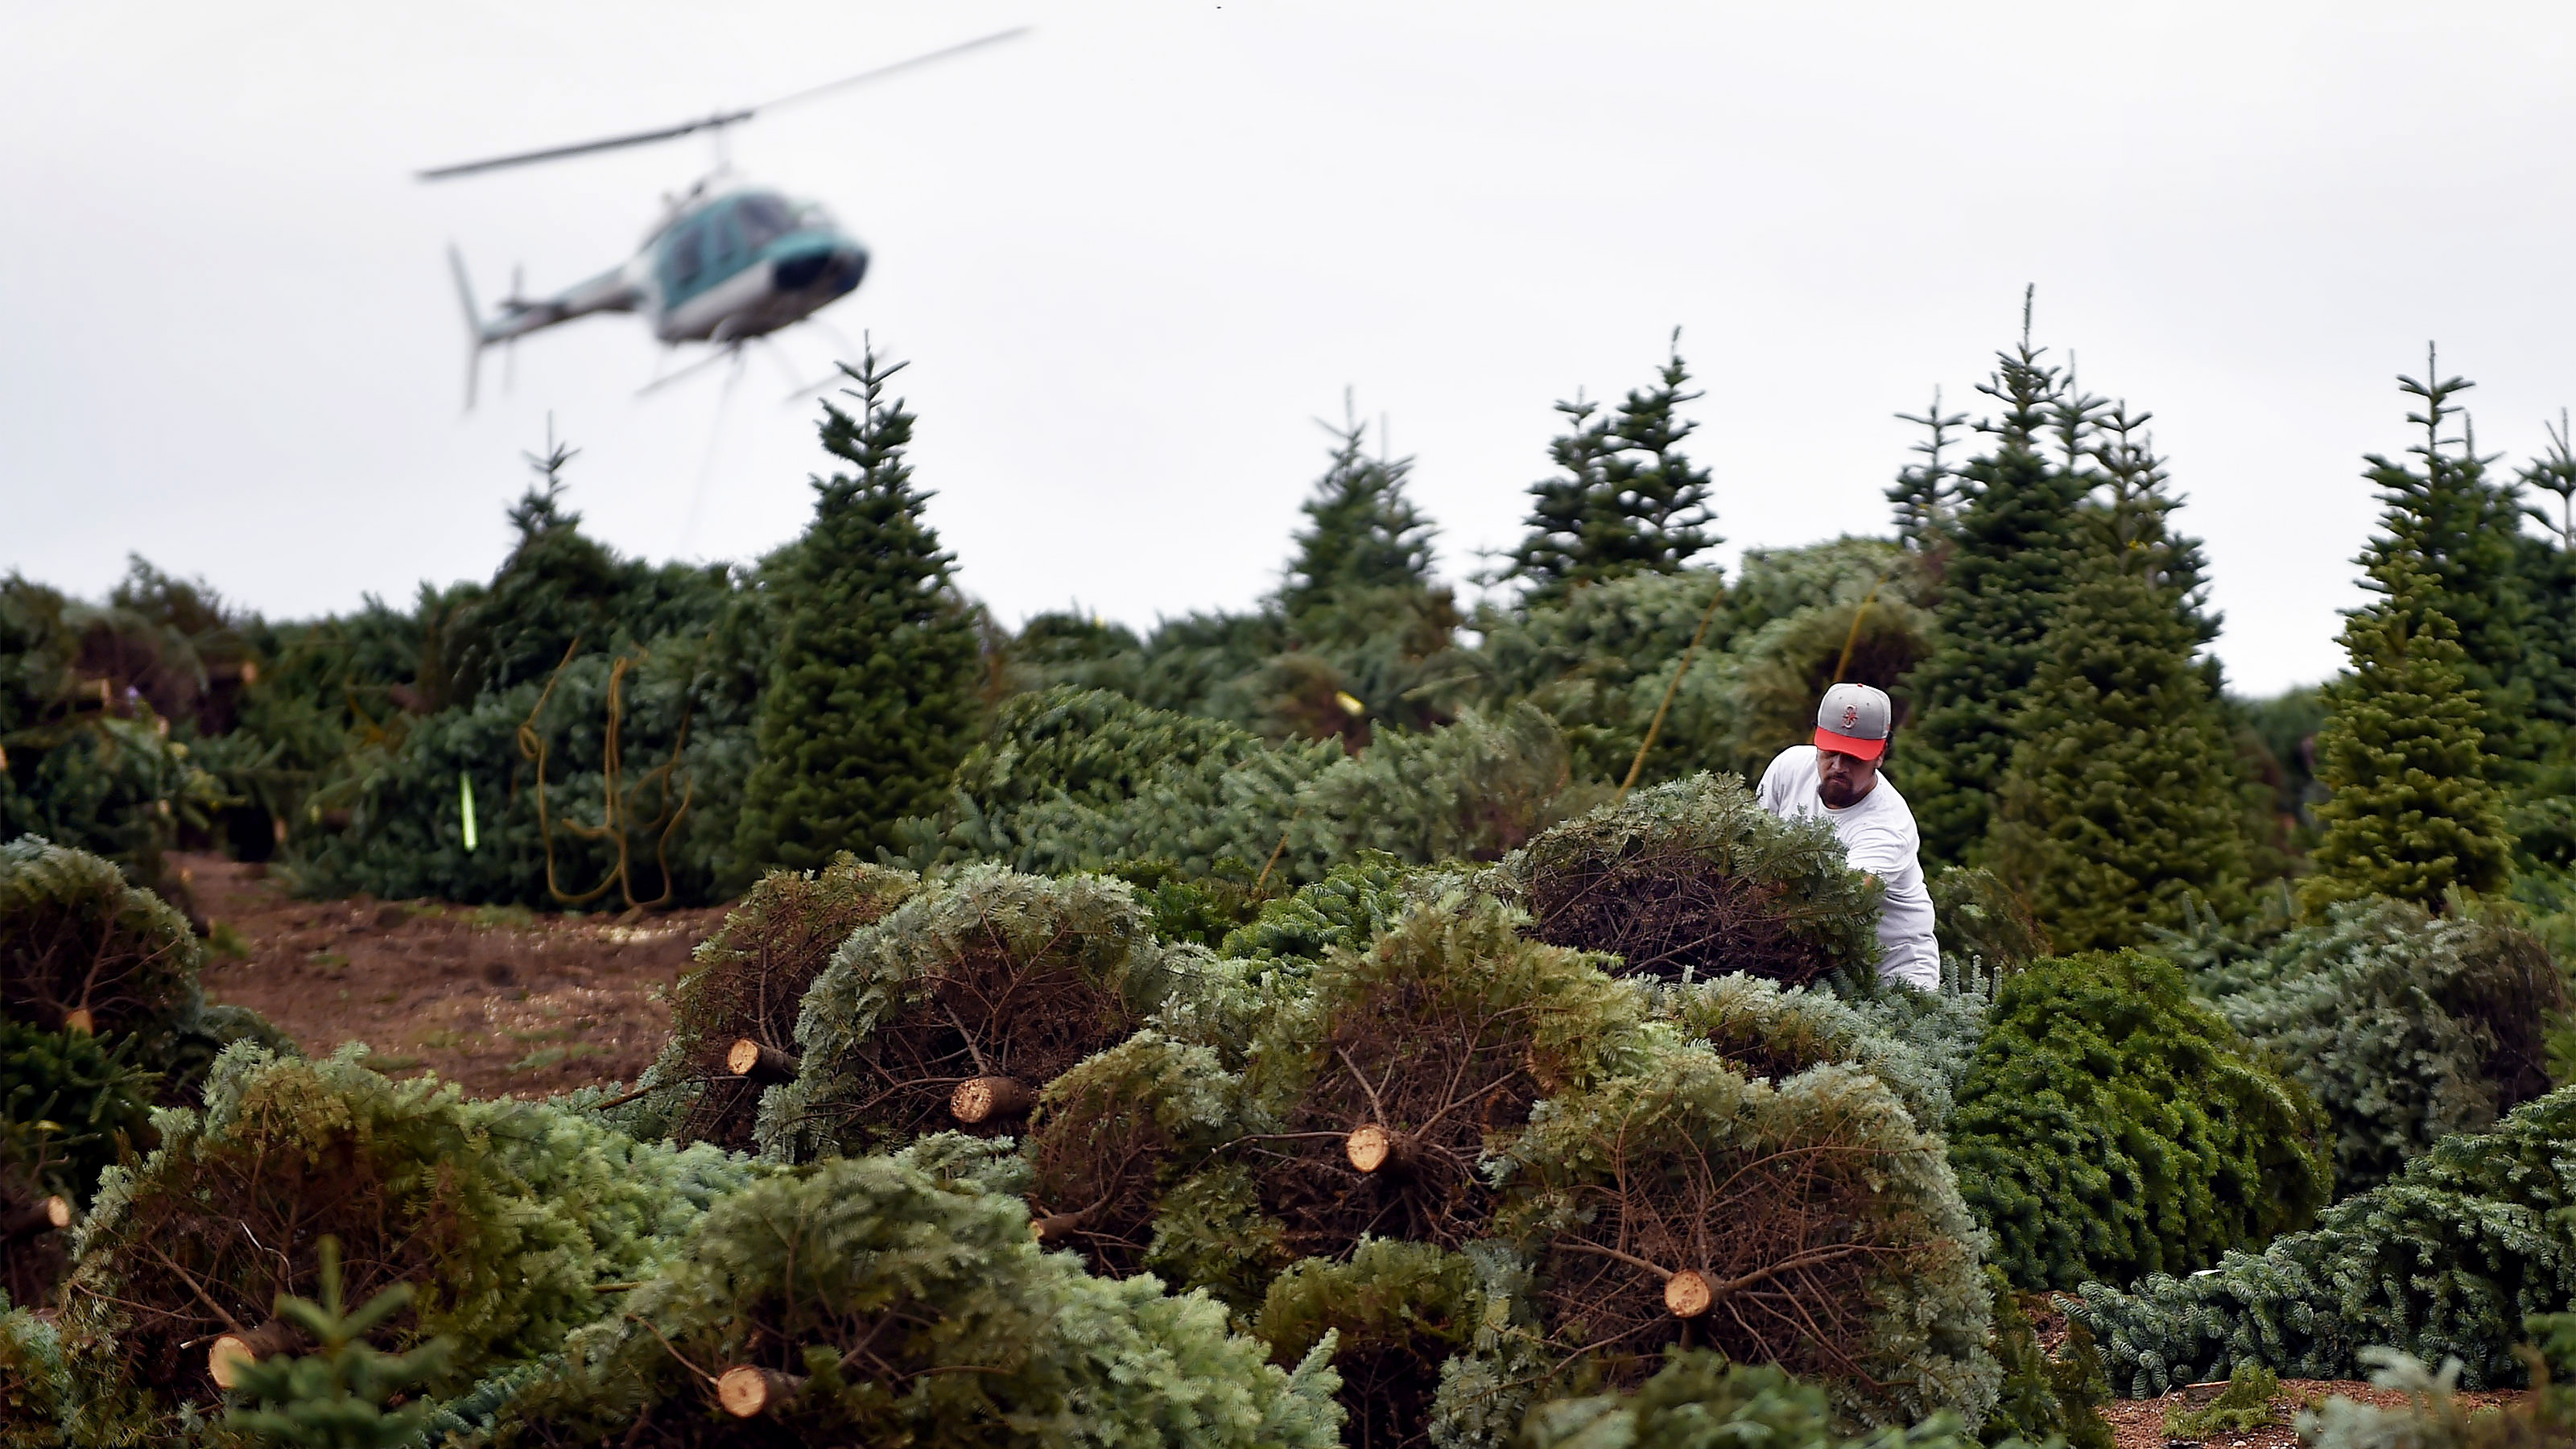 Bundles of Noble fir trees are prepared for their aerial flight in special rope slings plucked from steep grades by helicopter pilots that swing the loads onto trucks called 'tubs' for efficient transport to Noble Mountain's shipping area in Oregon. Photo by David Tulis.